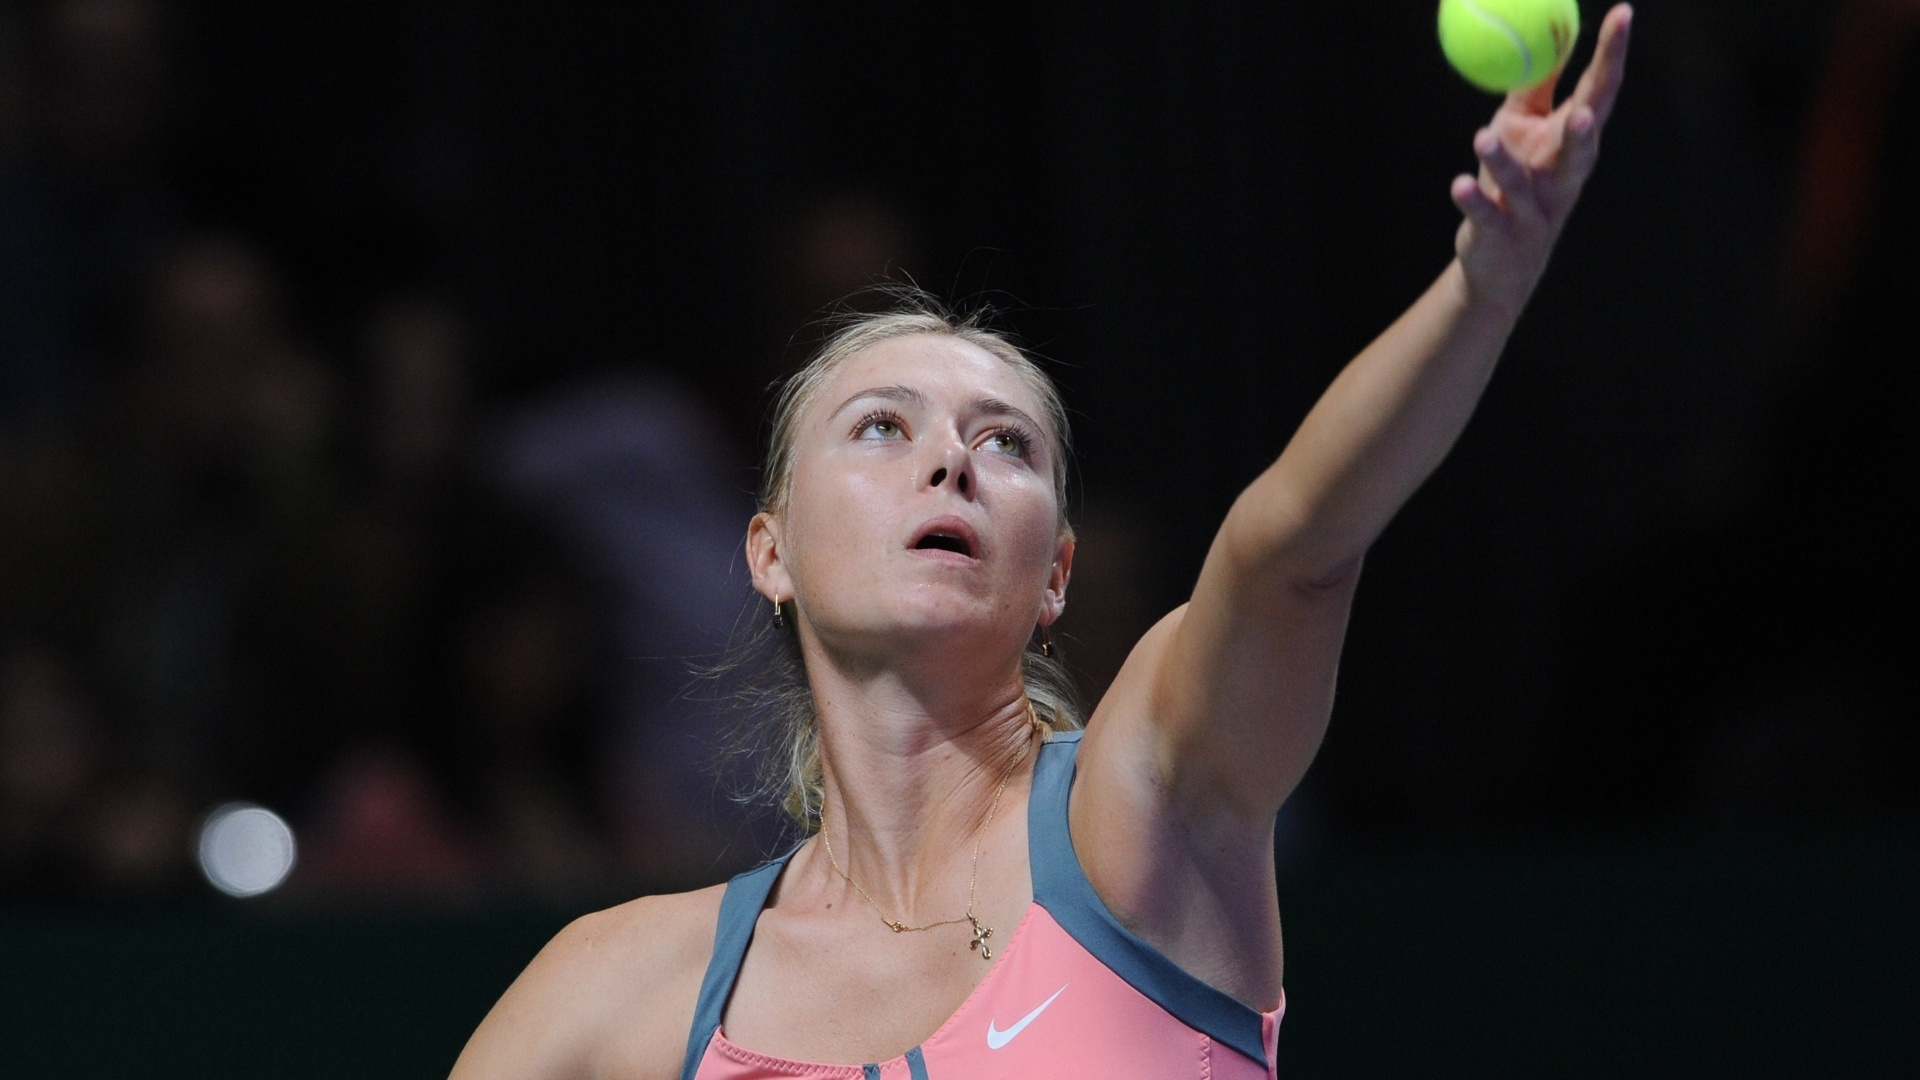 Sharapova prepara saque na final do Masters de Istambul